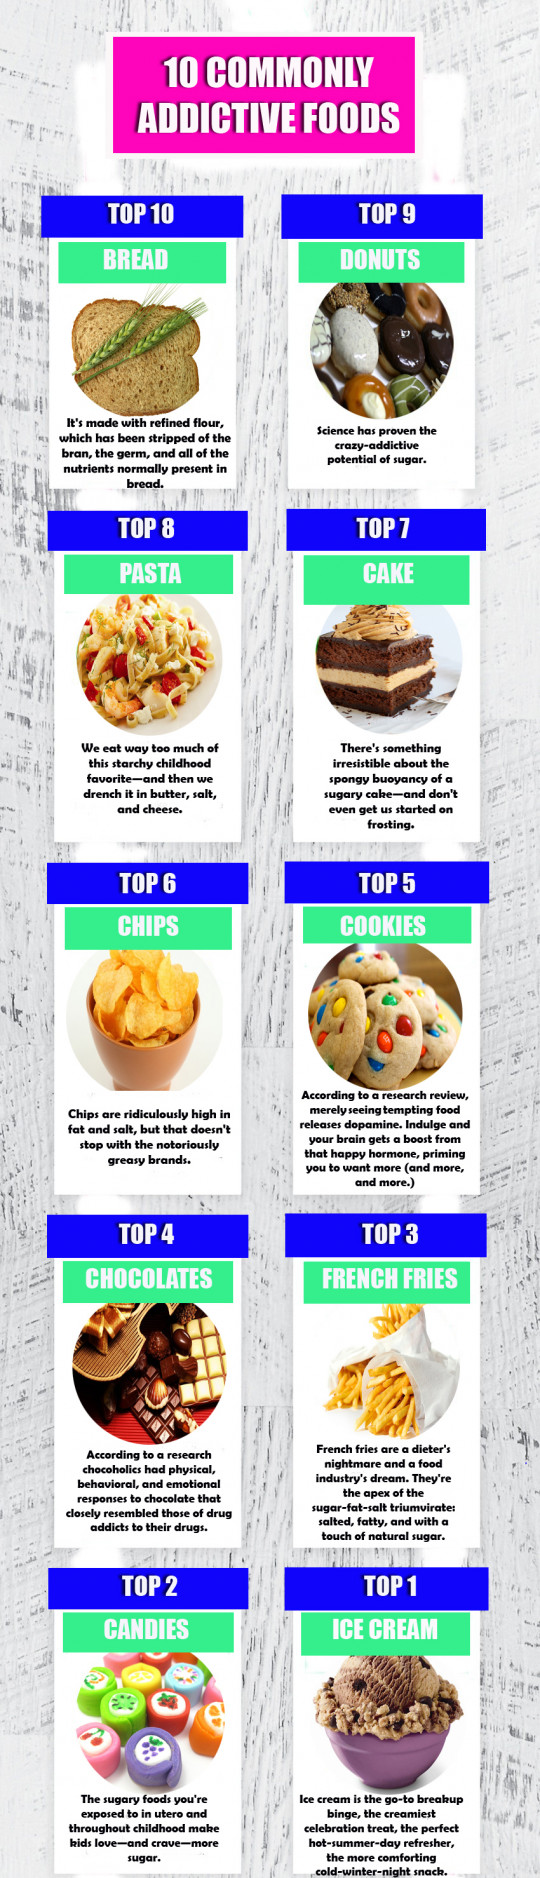 10 Commonly Addictive Foods